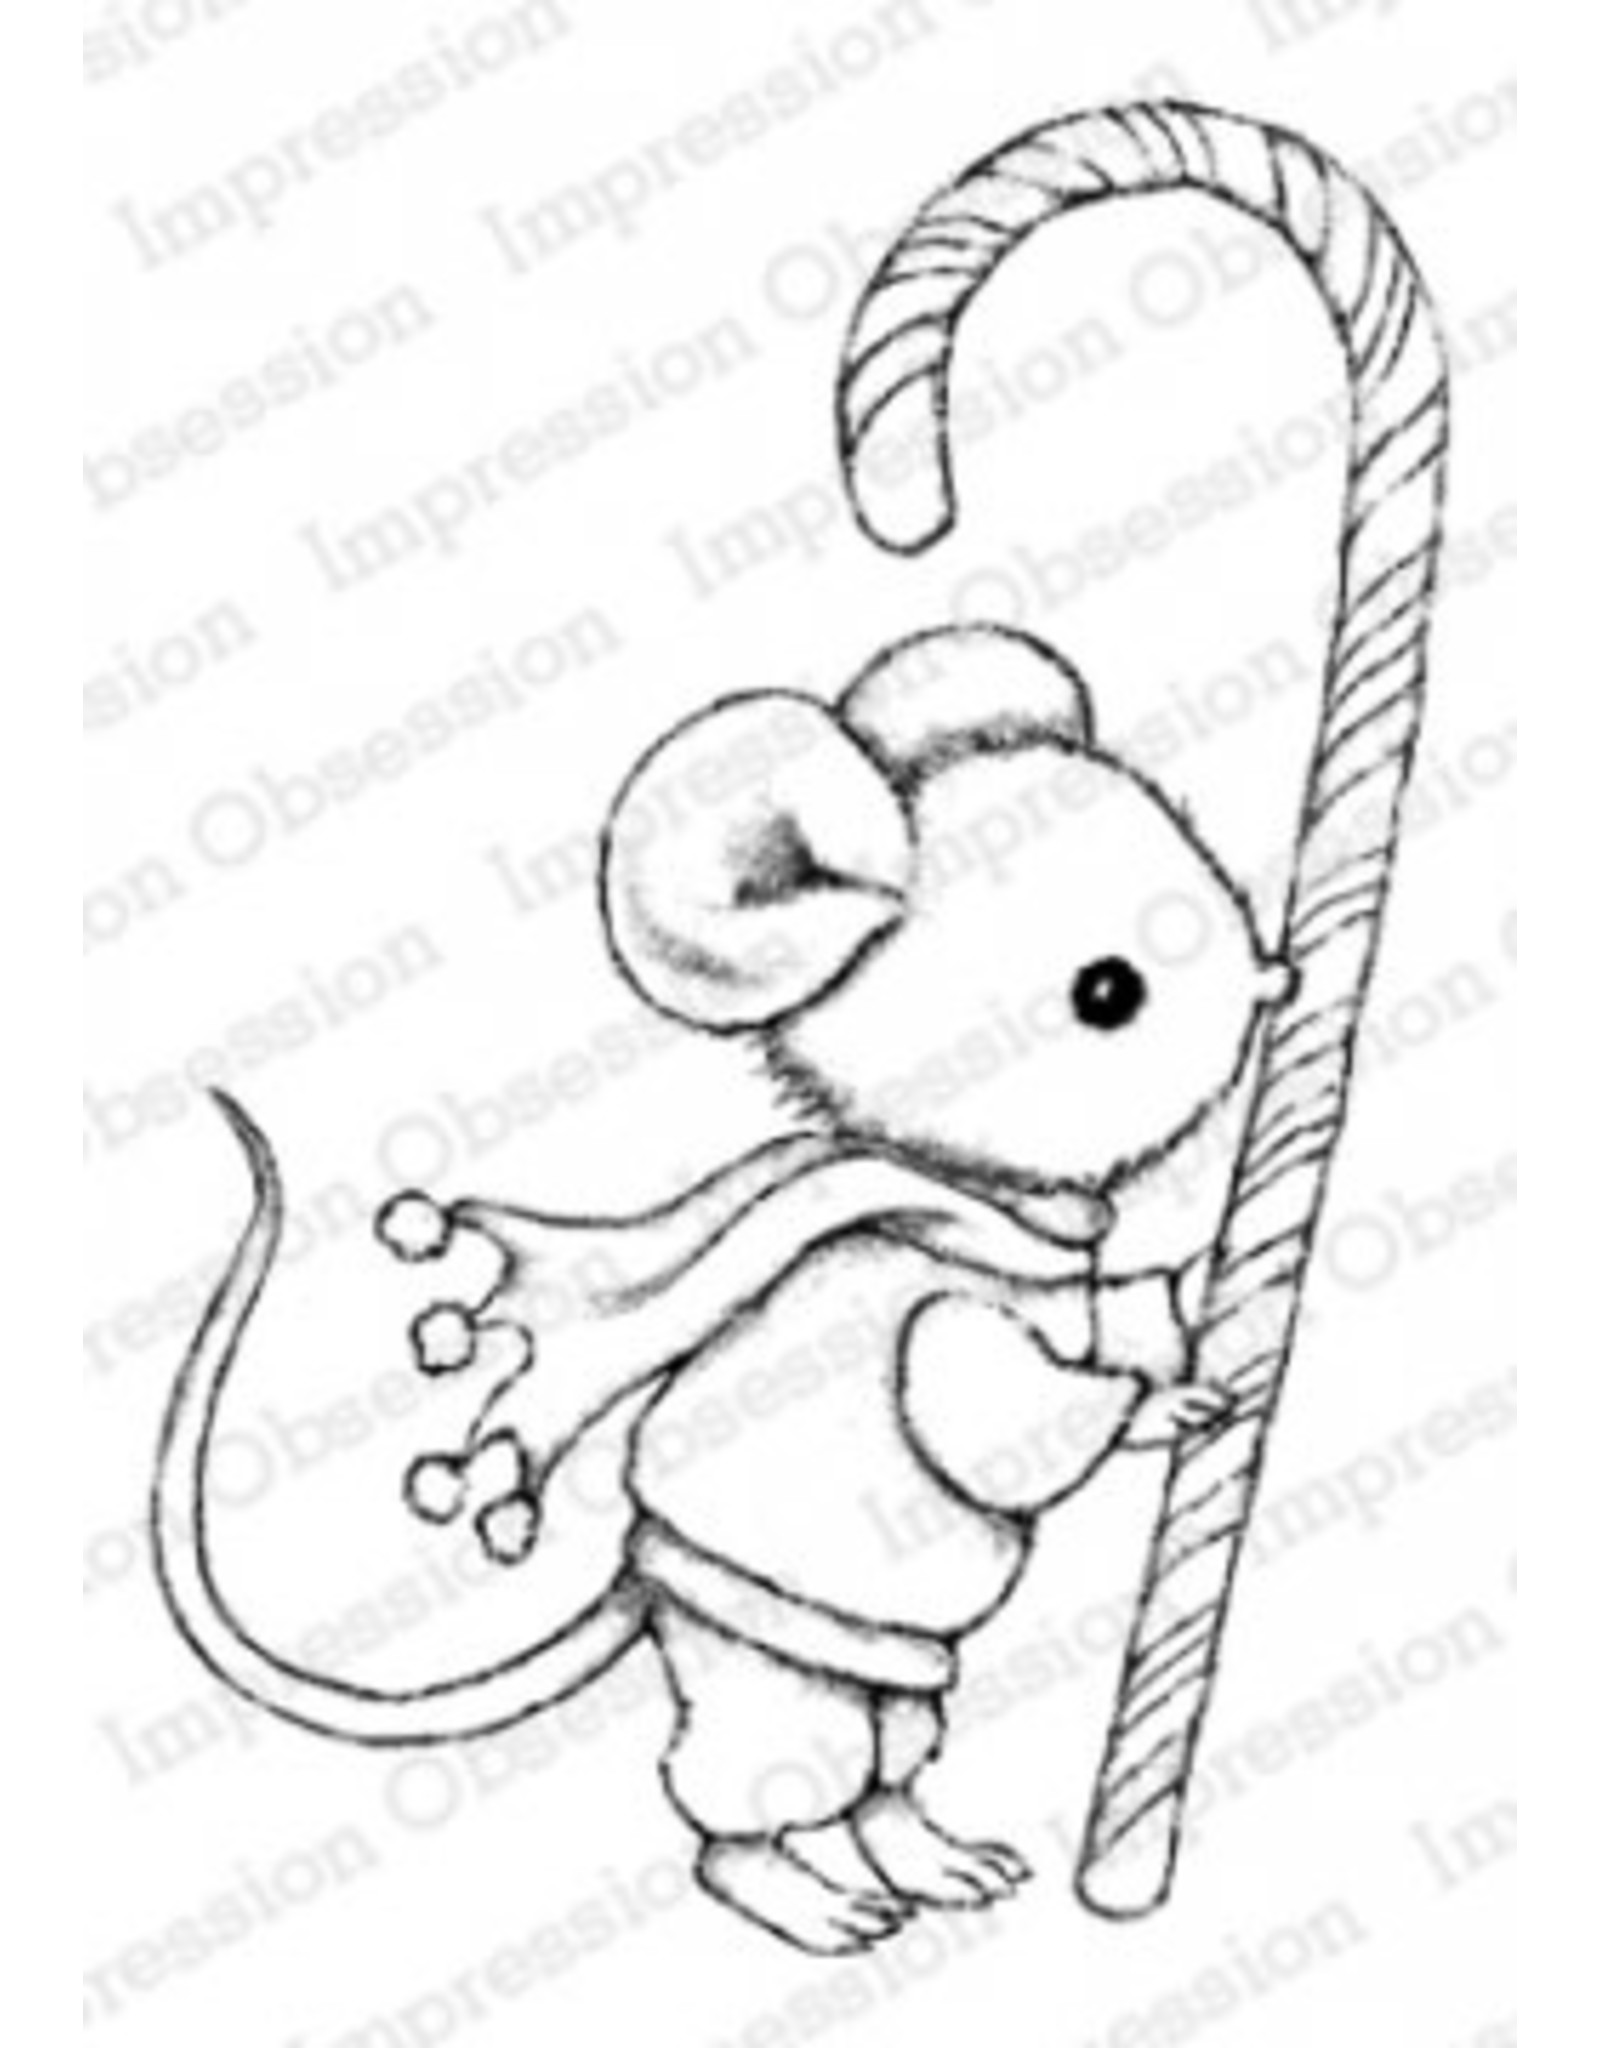 Impression Obsession Candy Cane Mouse Cling Stamp